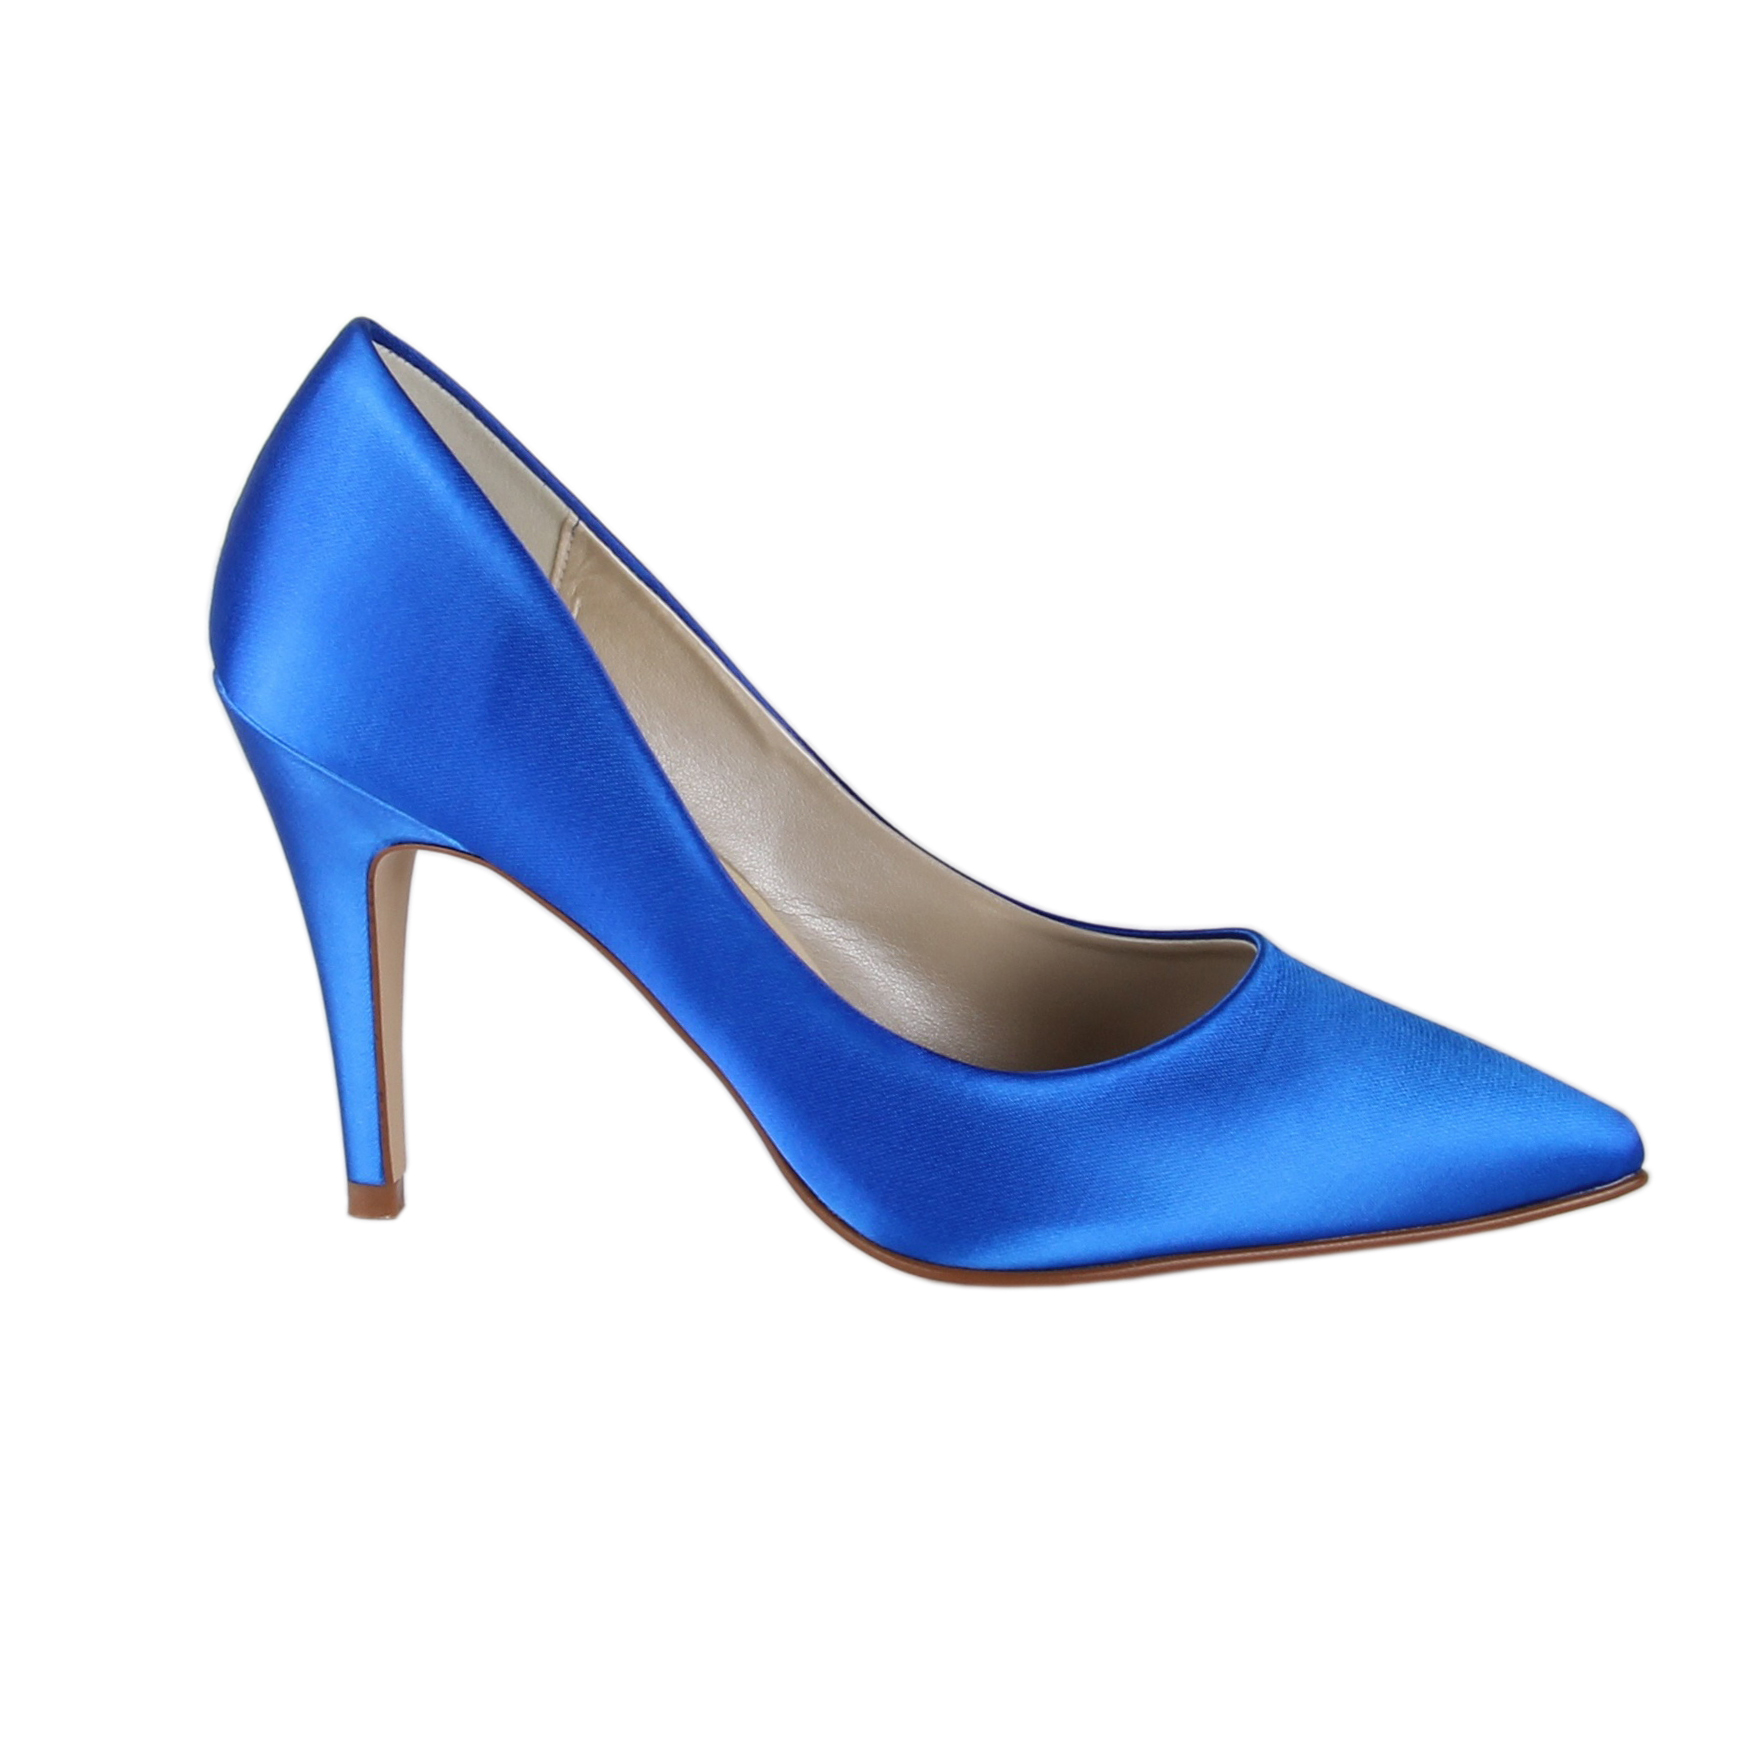 143757a698 We've found a designer dupe for Carrie Bradshaw's Manolo Blahnik ...